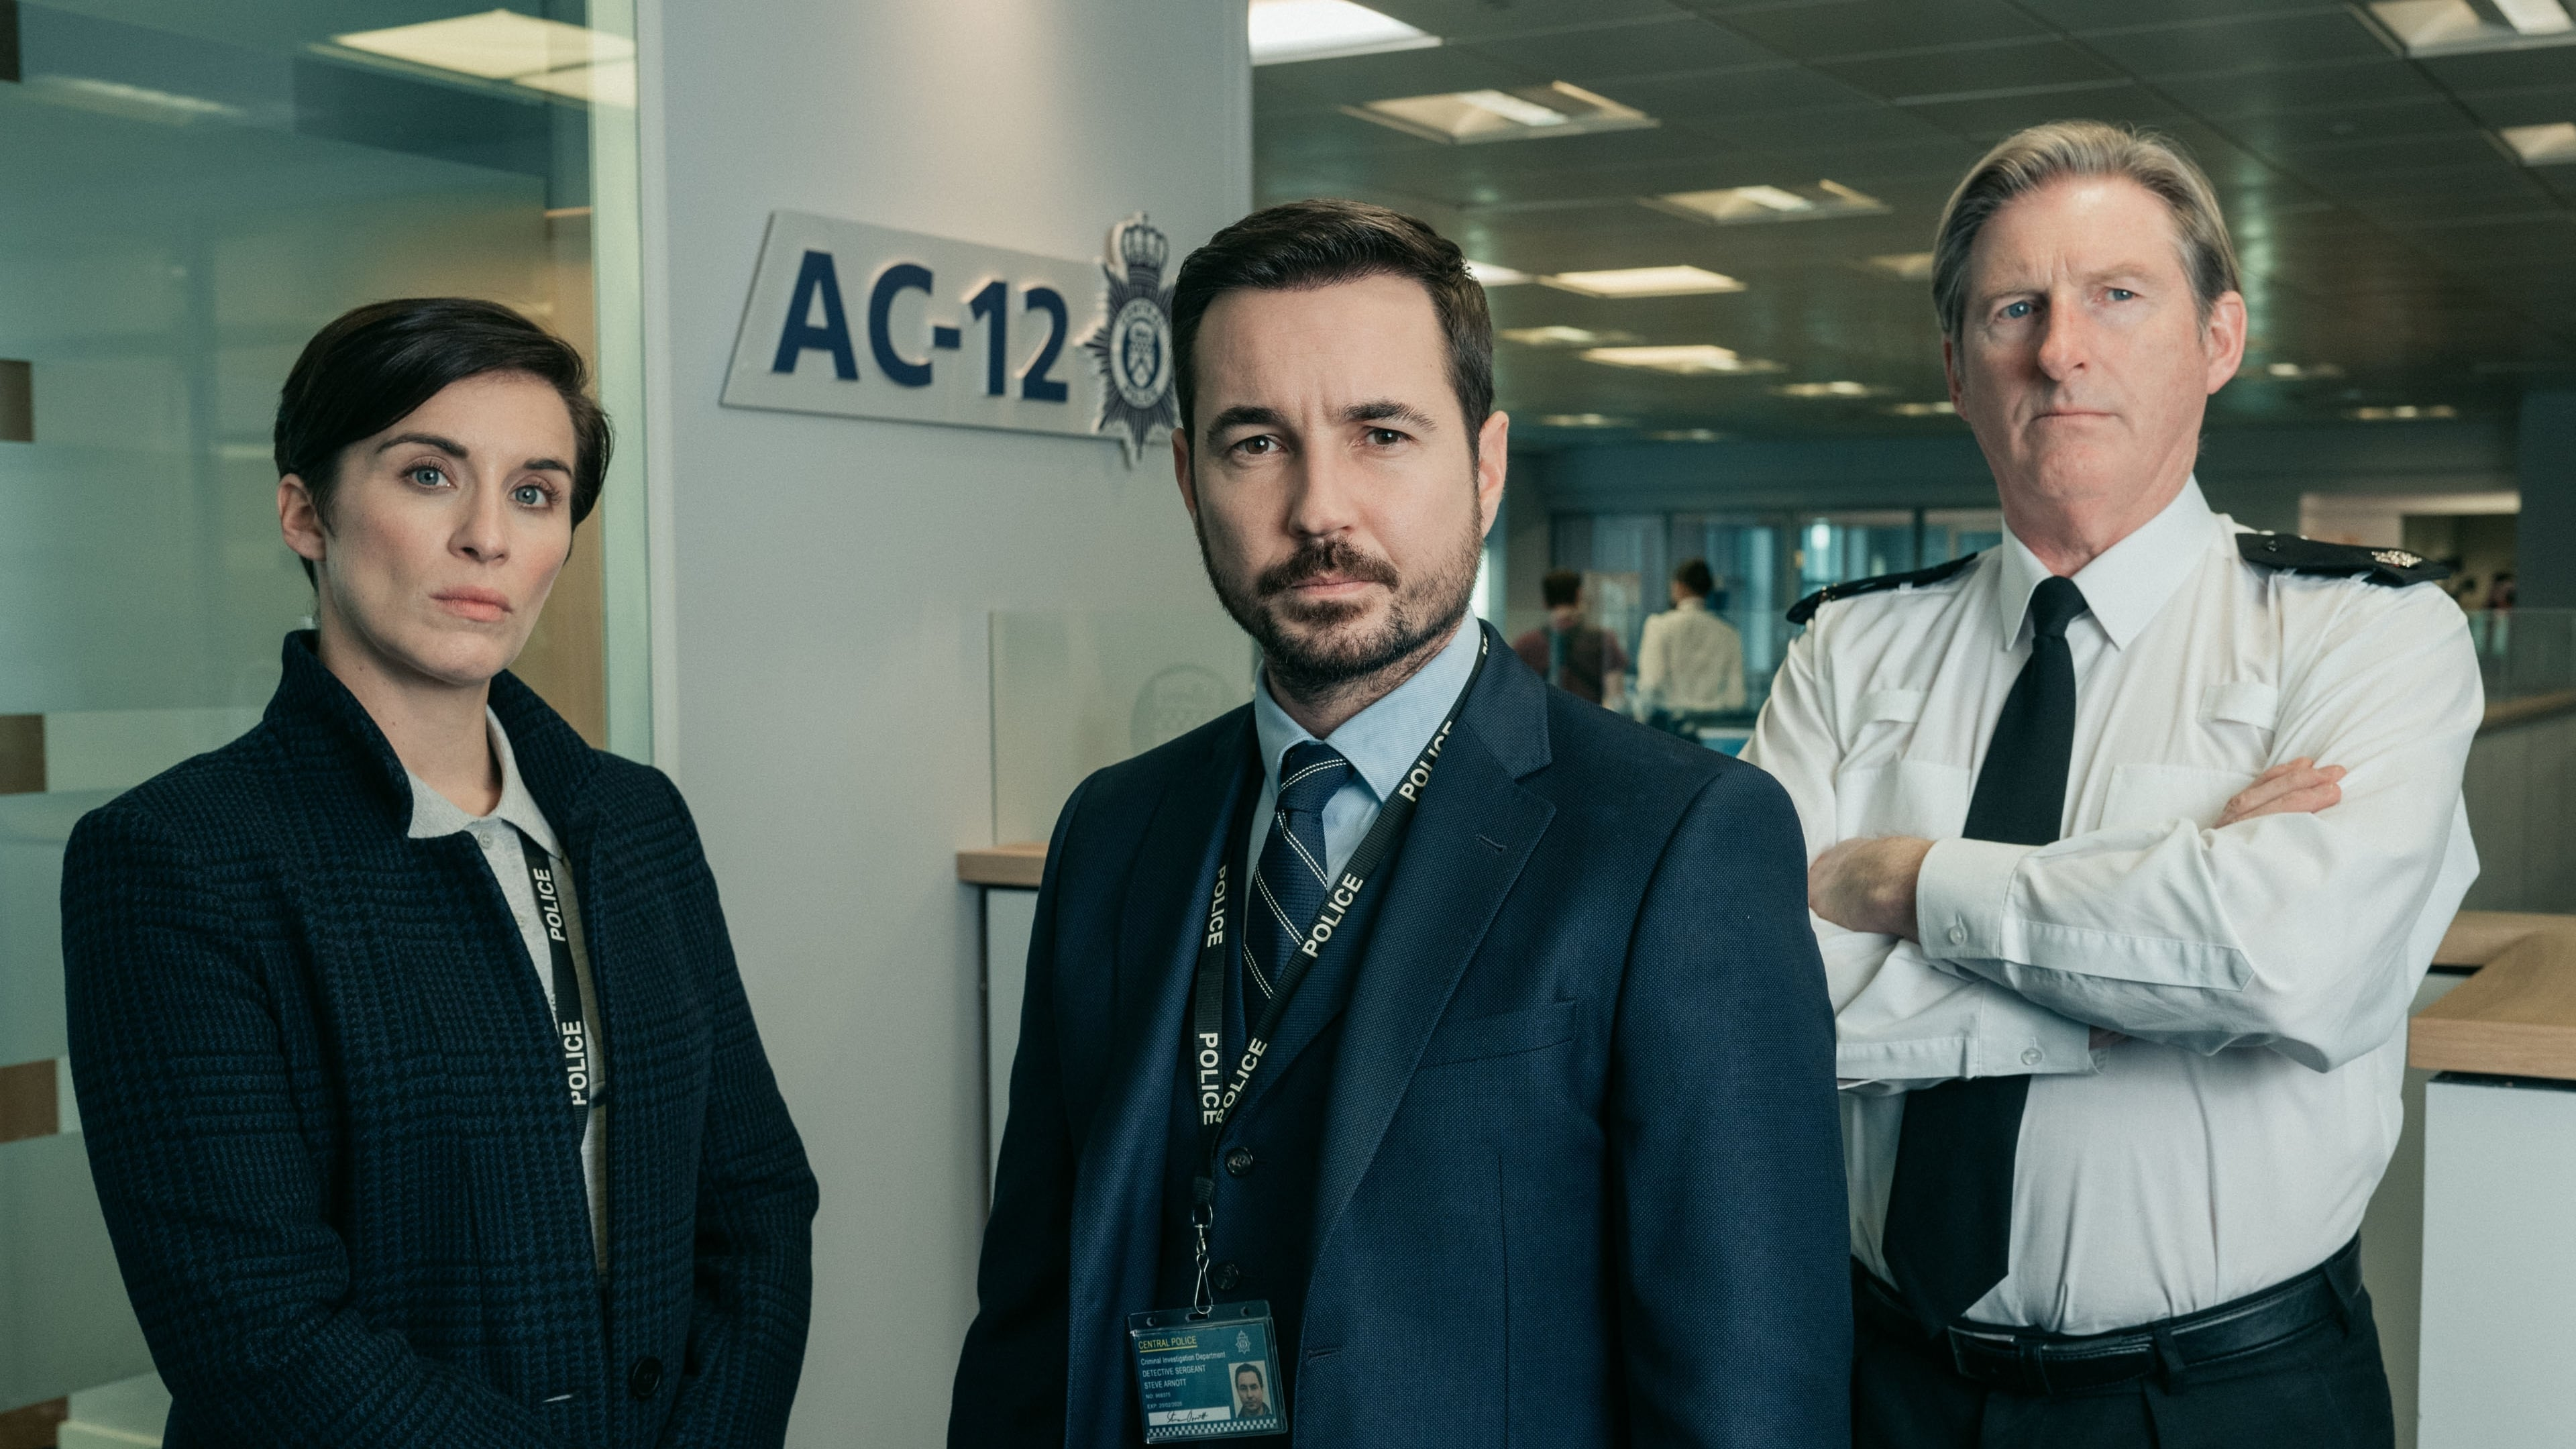 Sixth season Line of Duty has a trailer